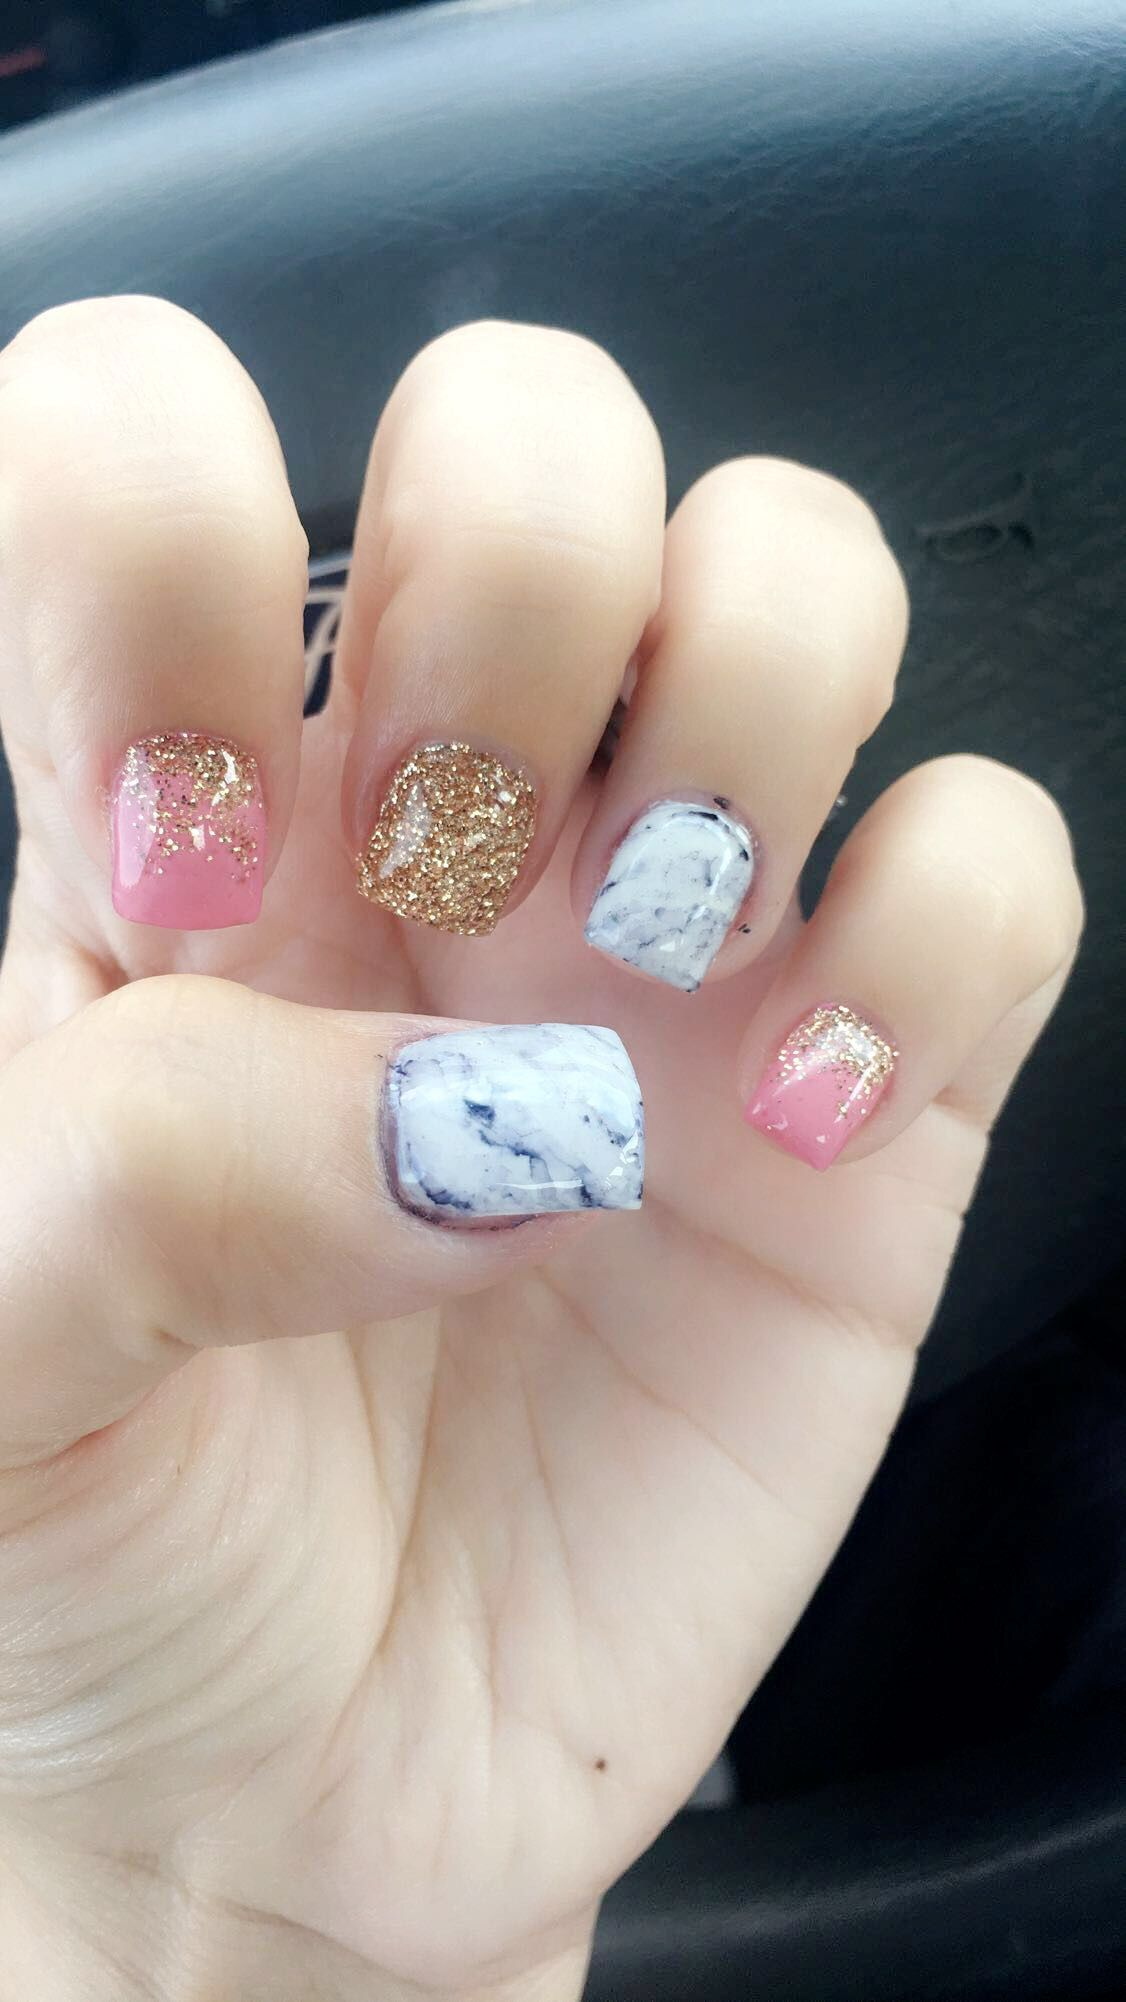 Pin de Ashtin Hart en Cute nail ideas | Pinterest | Uñas gelish ...